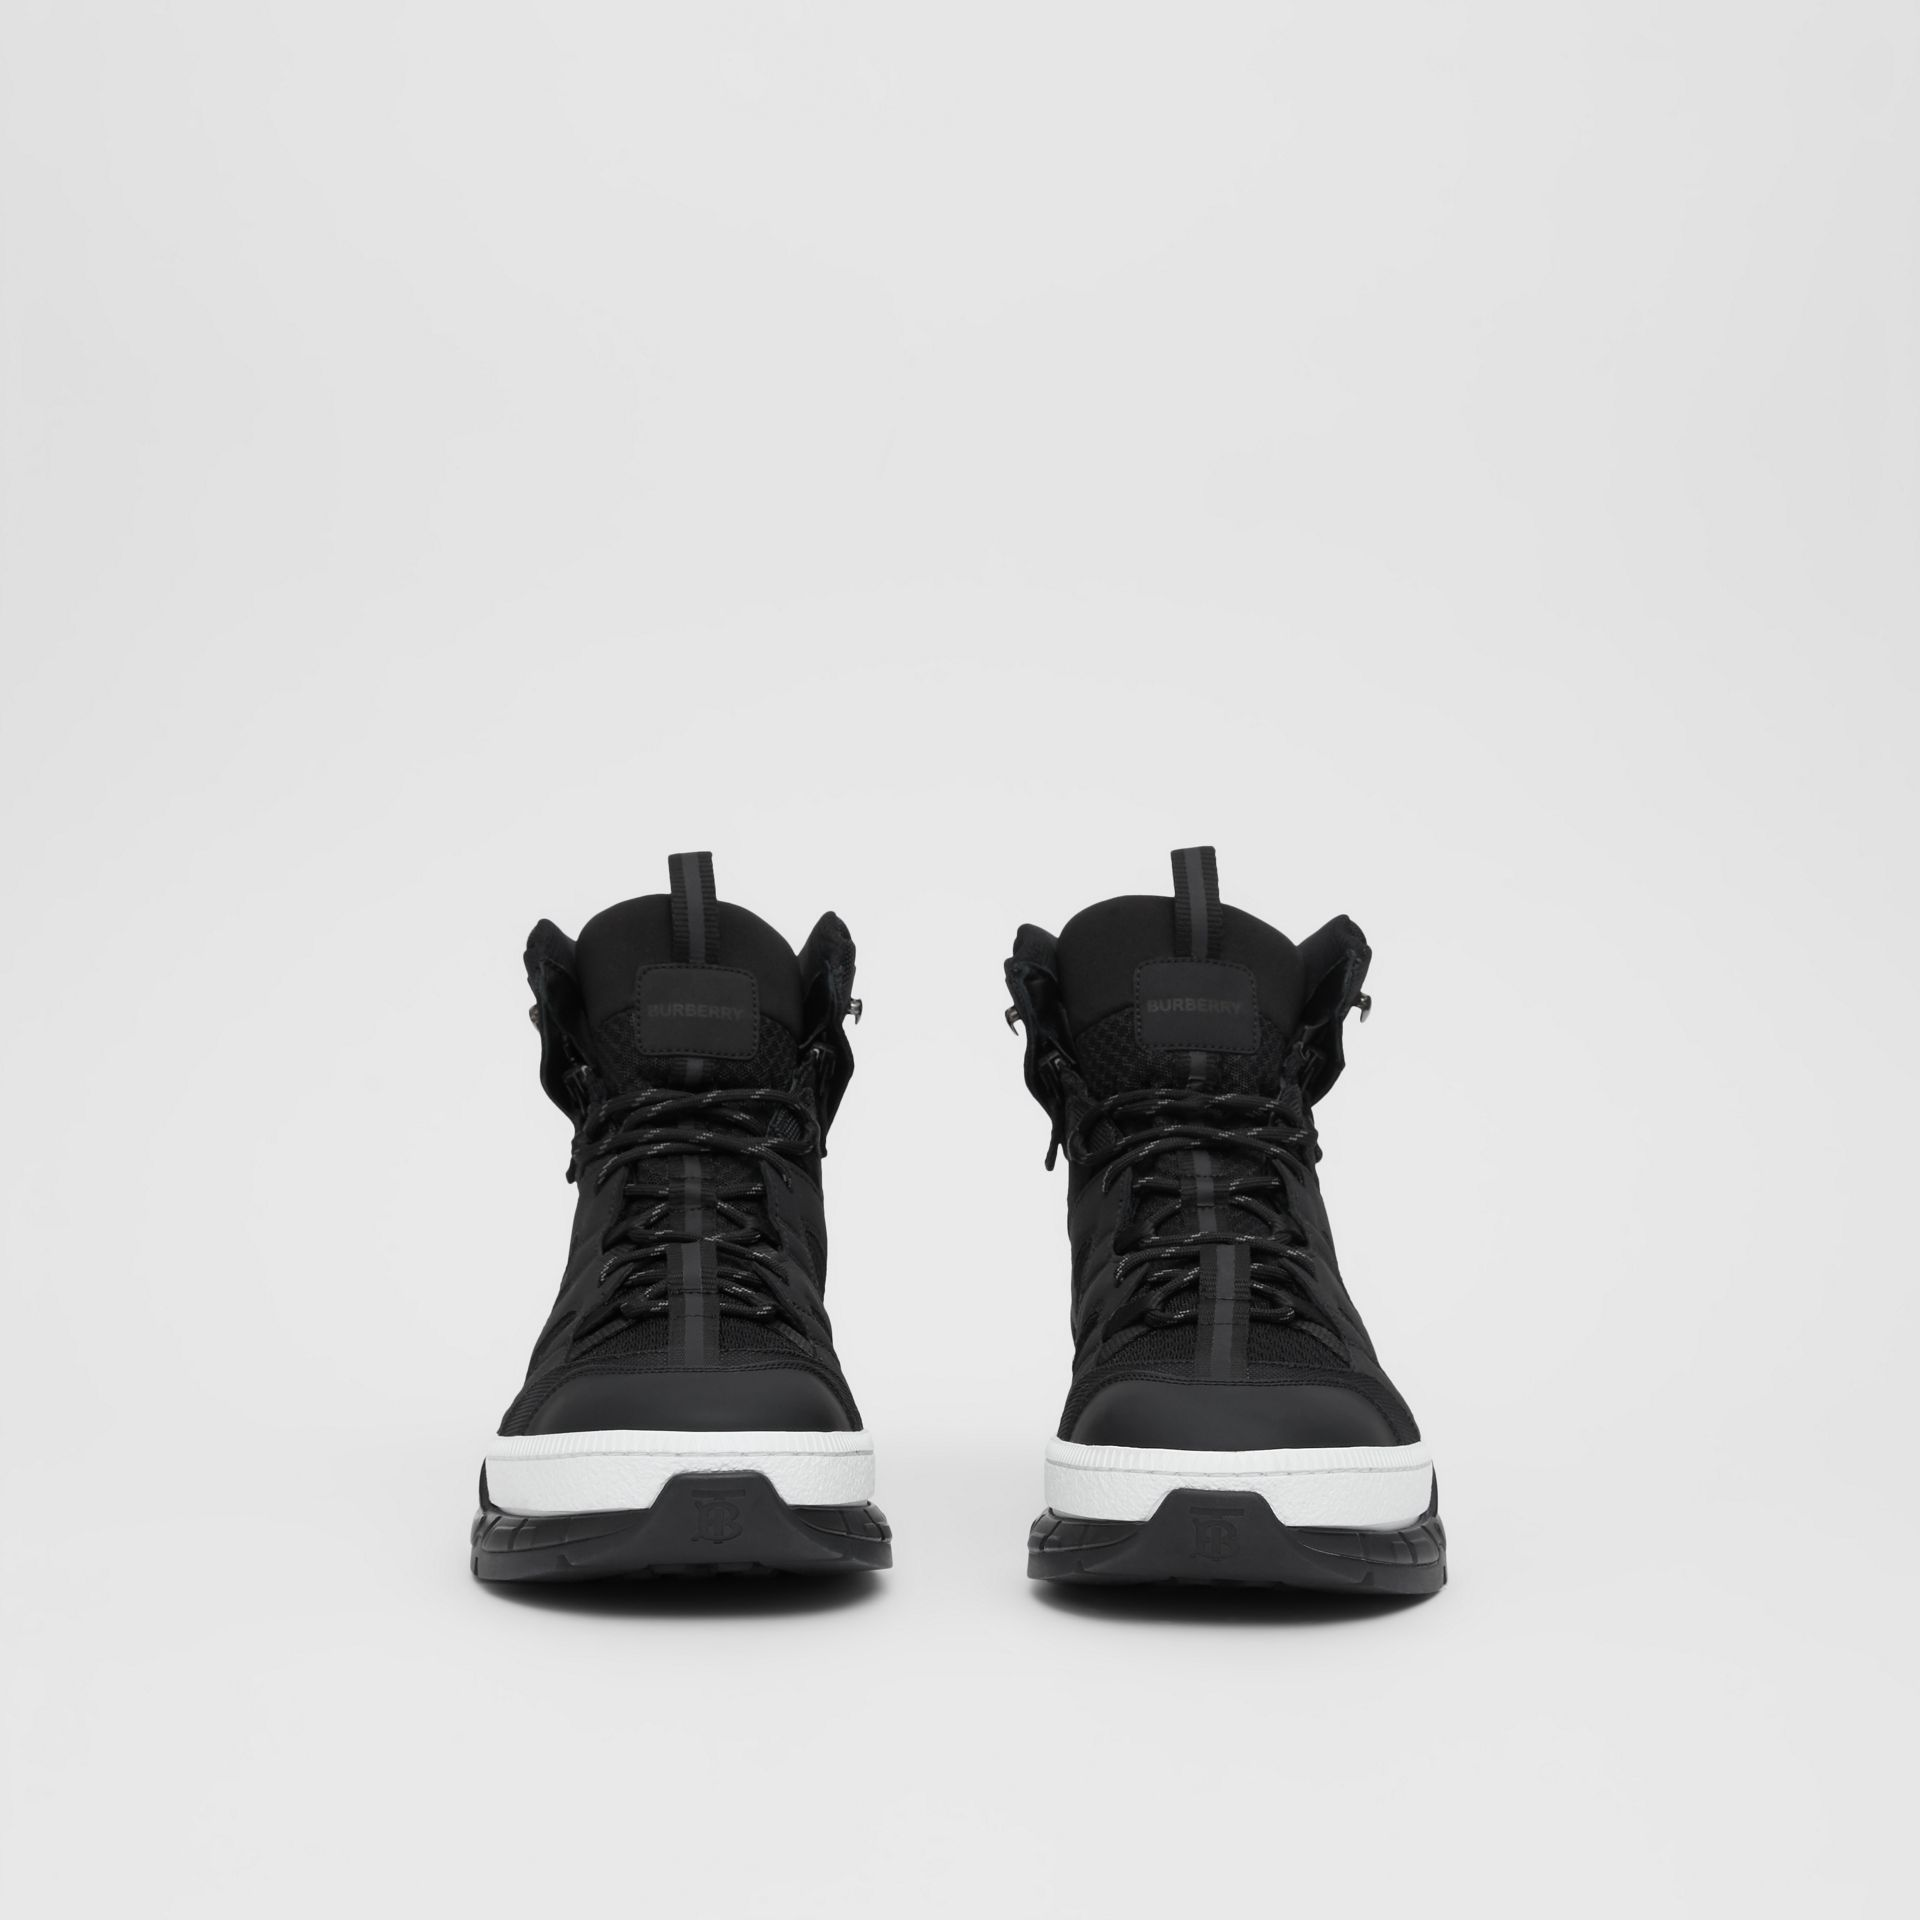 Sneakers montantes Union en filet et nubuck (Noir) - Homme | Burberry - photo de la galerie 3